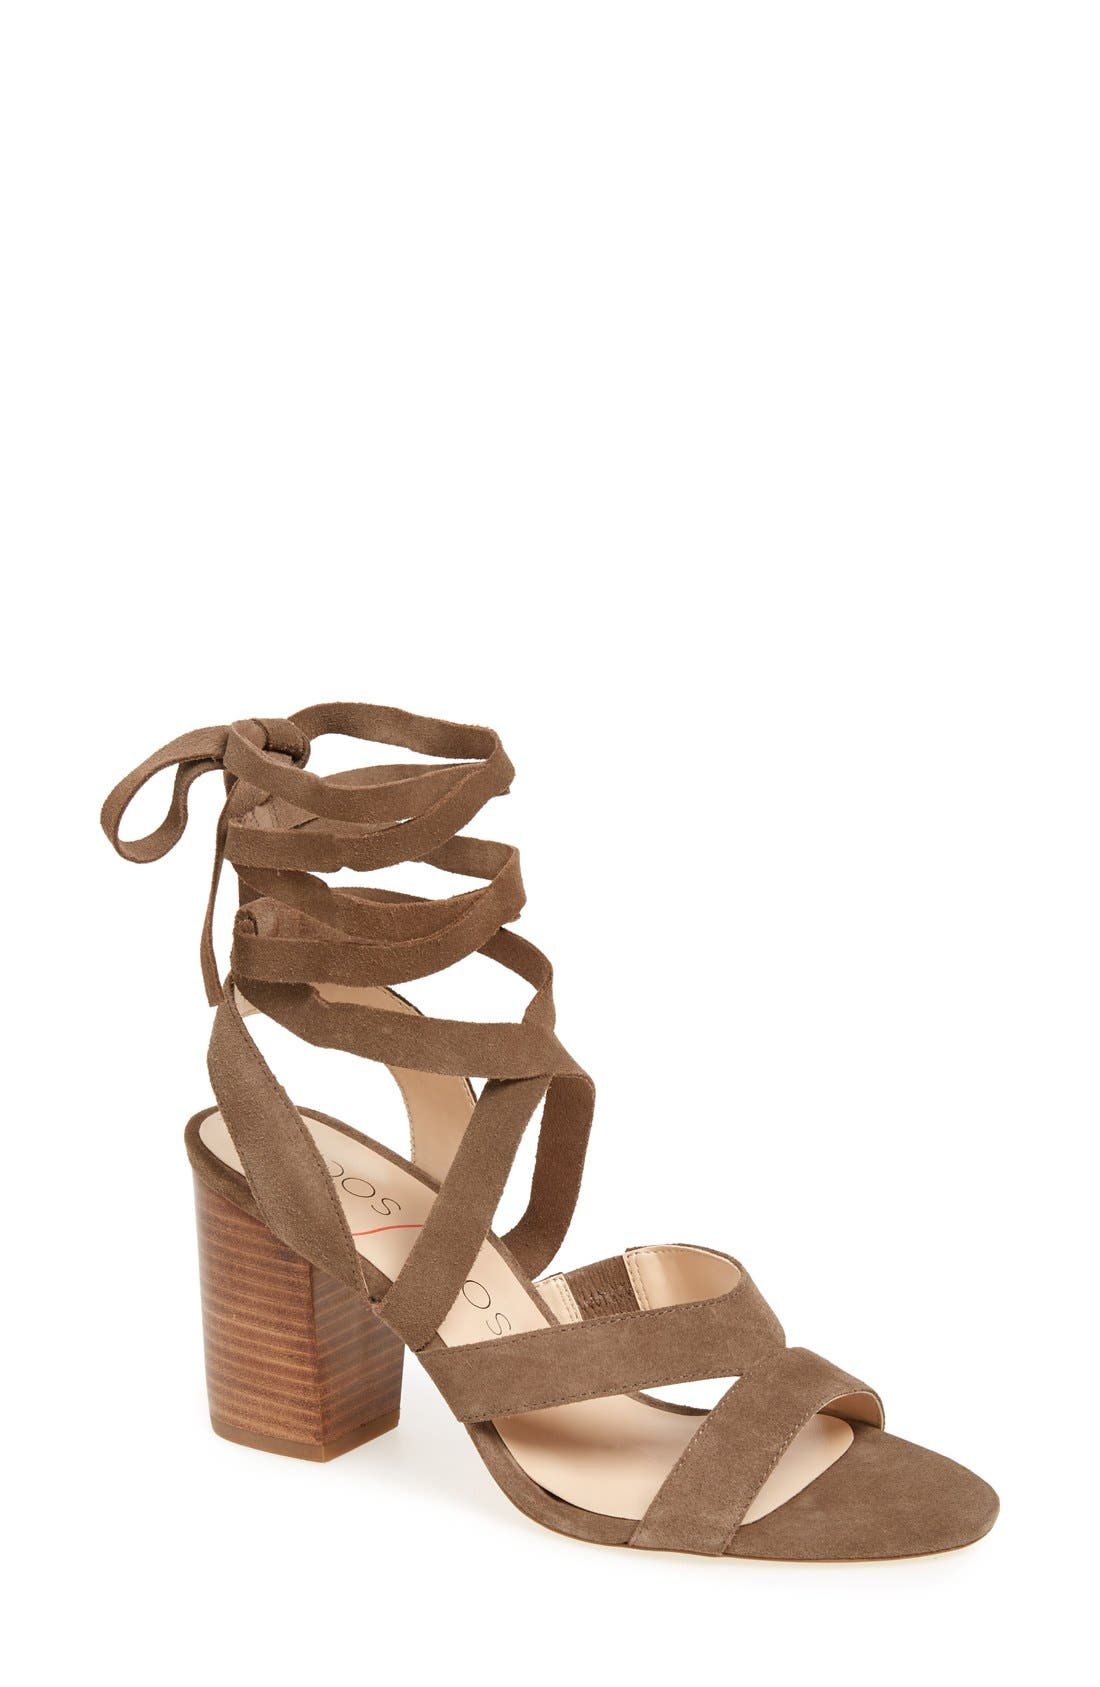 'Lyla' Lace-Up Sandal,                         Main,                         color, Taupe